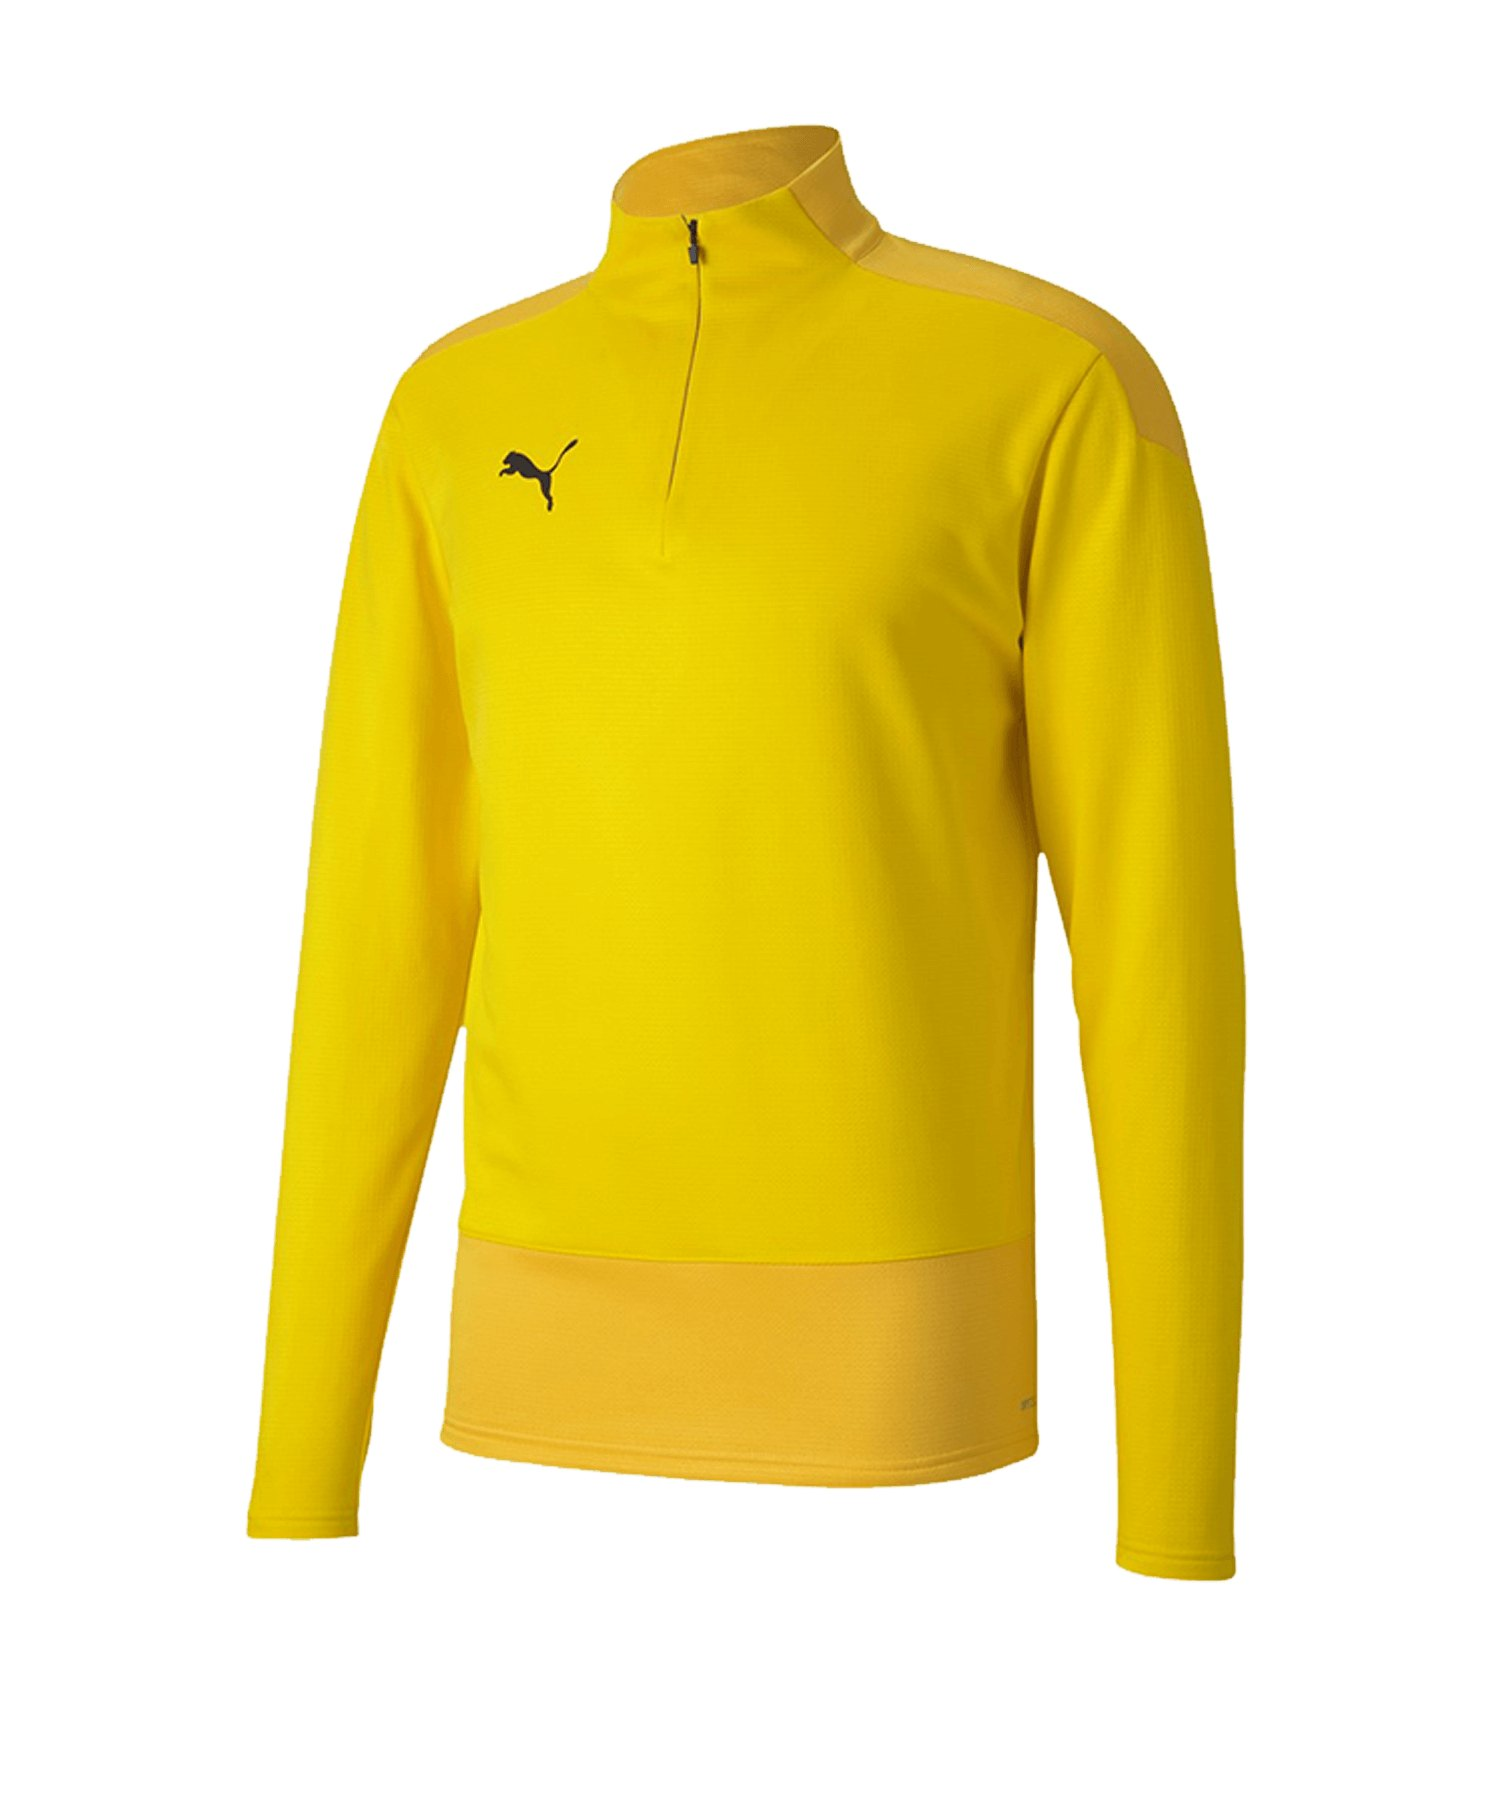 PUMA teamGOAL 23 Training 1/4 Zip Top Gelb F07 - gelb